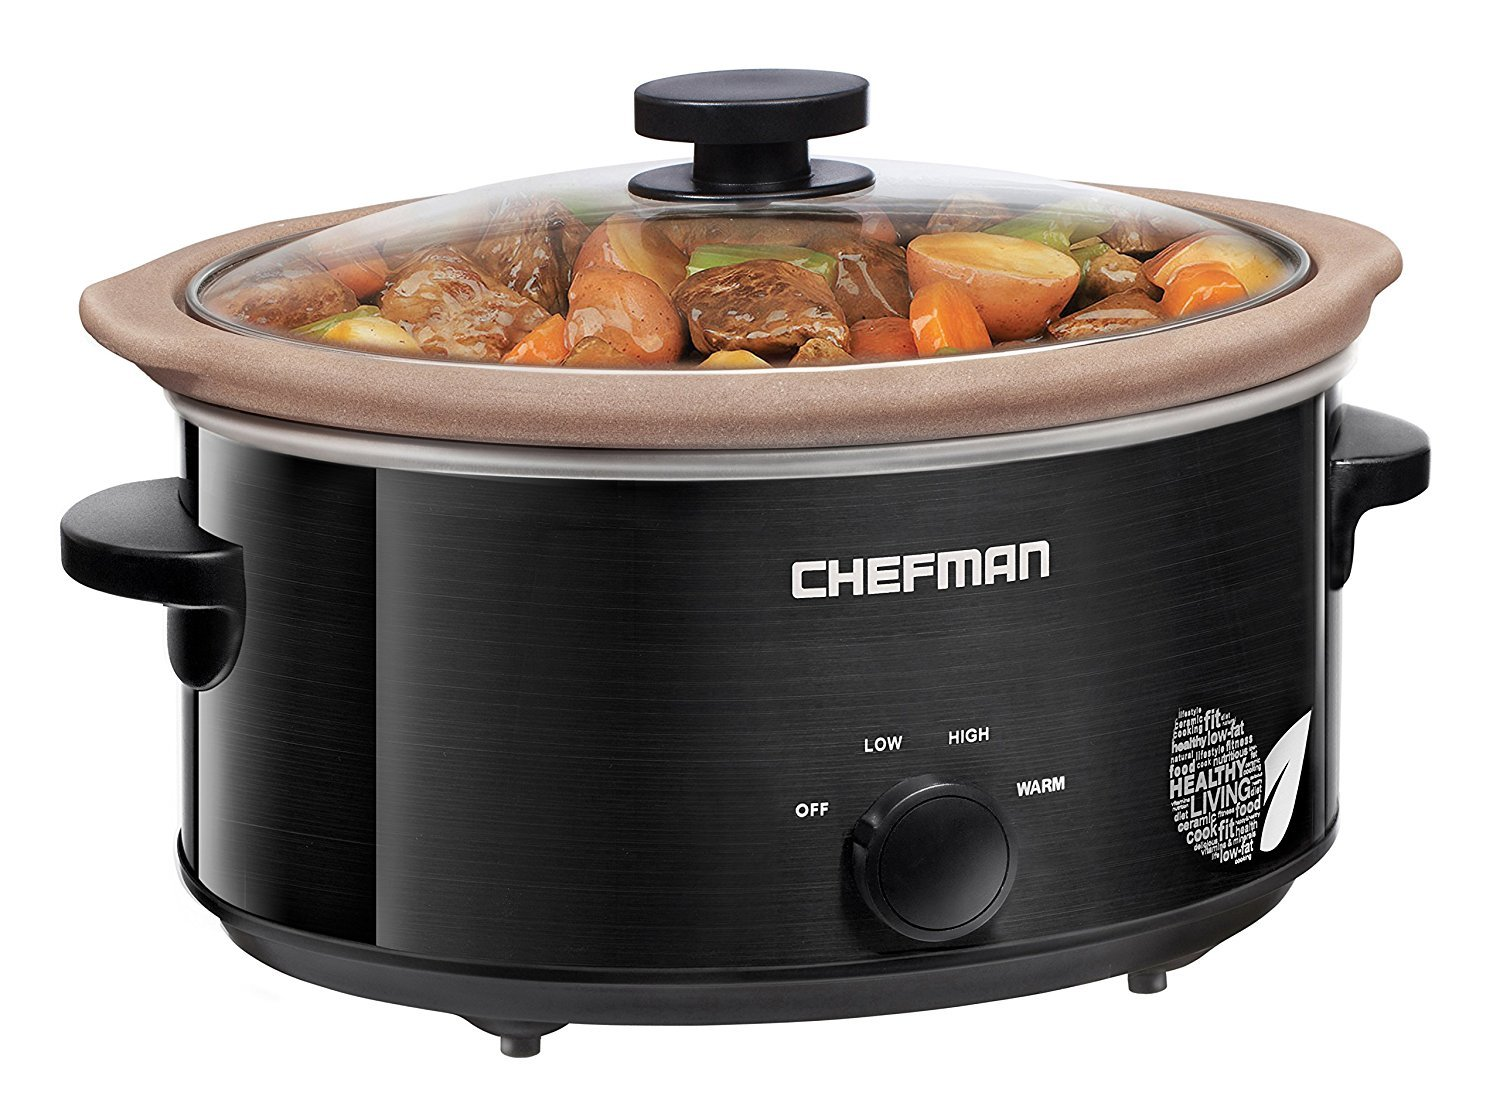 Chefman Slow Cooker, All Natural XL 6 Qt. Pot, Glaze-Free, Chemical-Free Stovetop, Oven, Dishwasher Safe Crock; The Only Naturally Nonstick Paleo Certified Slow Cooker, Free Recipes Included-RJ15-6-N